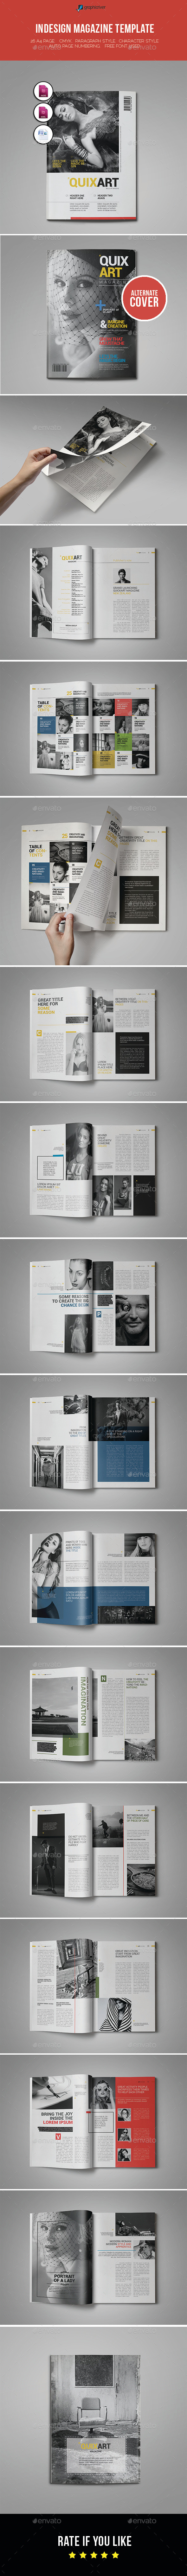 GraphicRiver Indesign Magazine Template 11078975